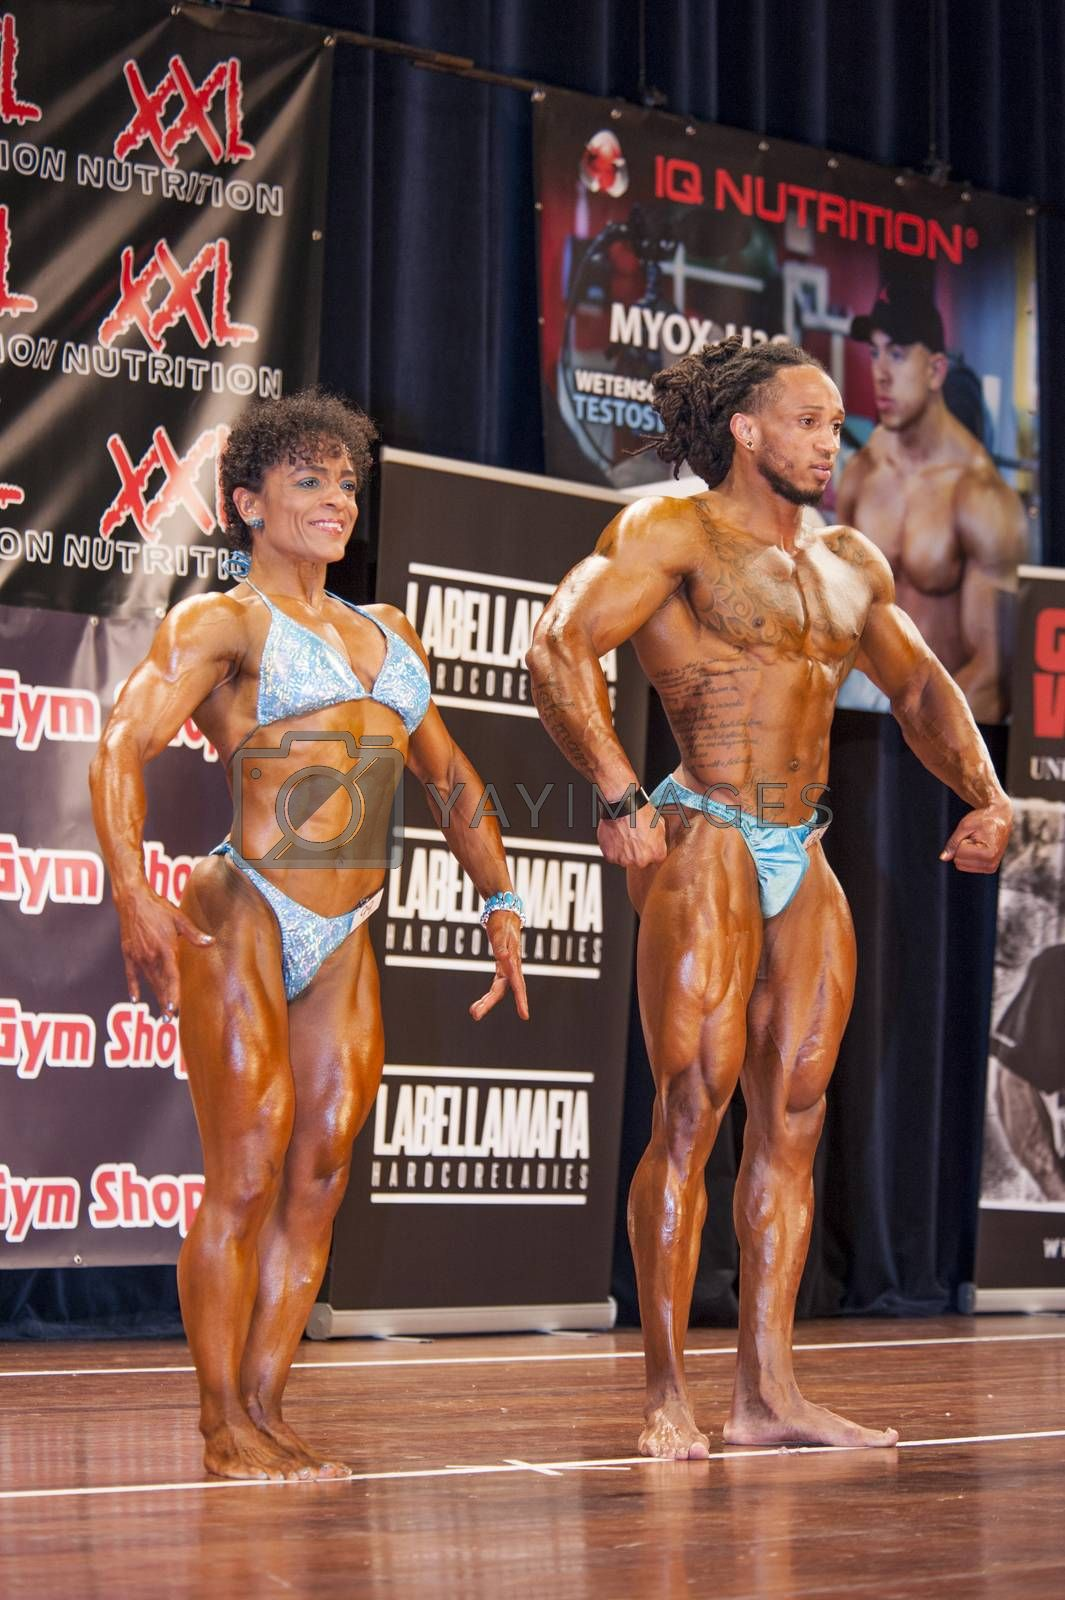 bodybuilding duo in relaxed front pose on stage by yellowpaul